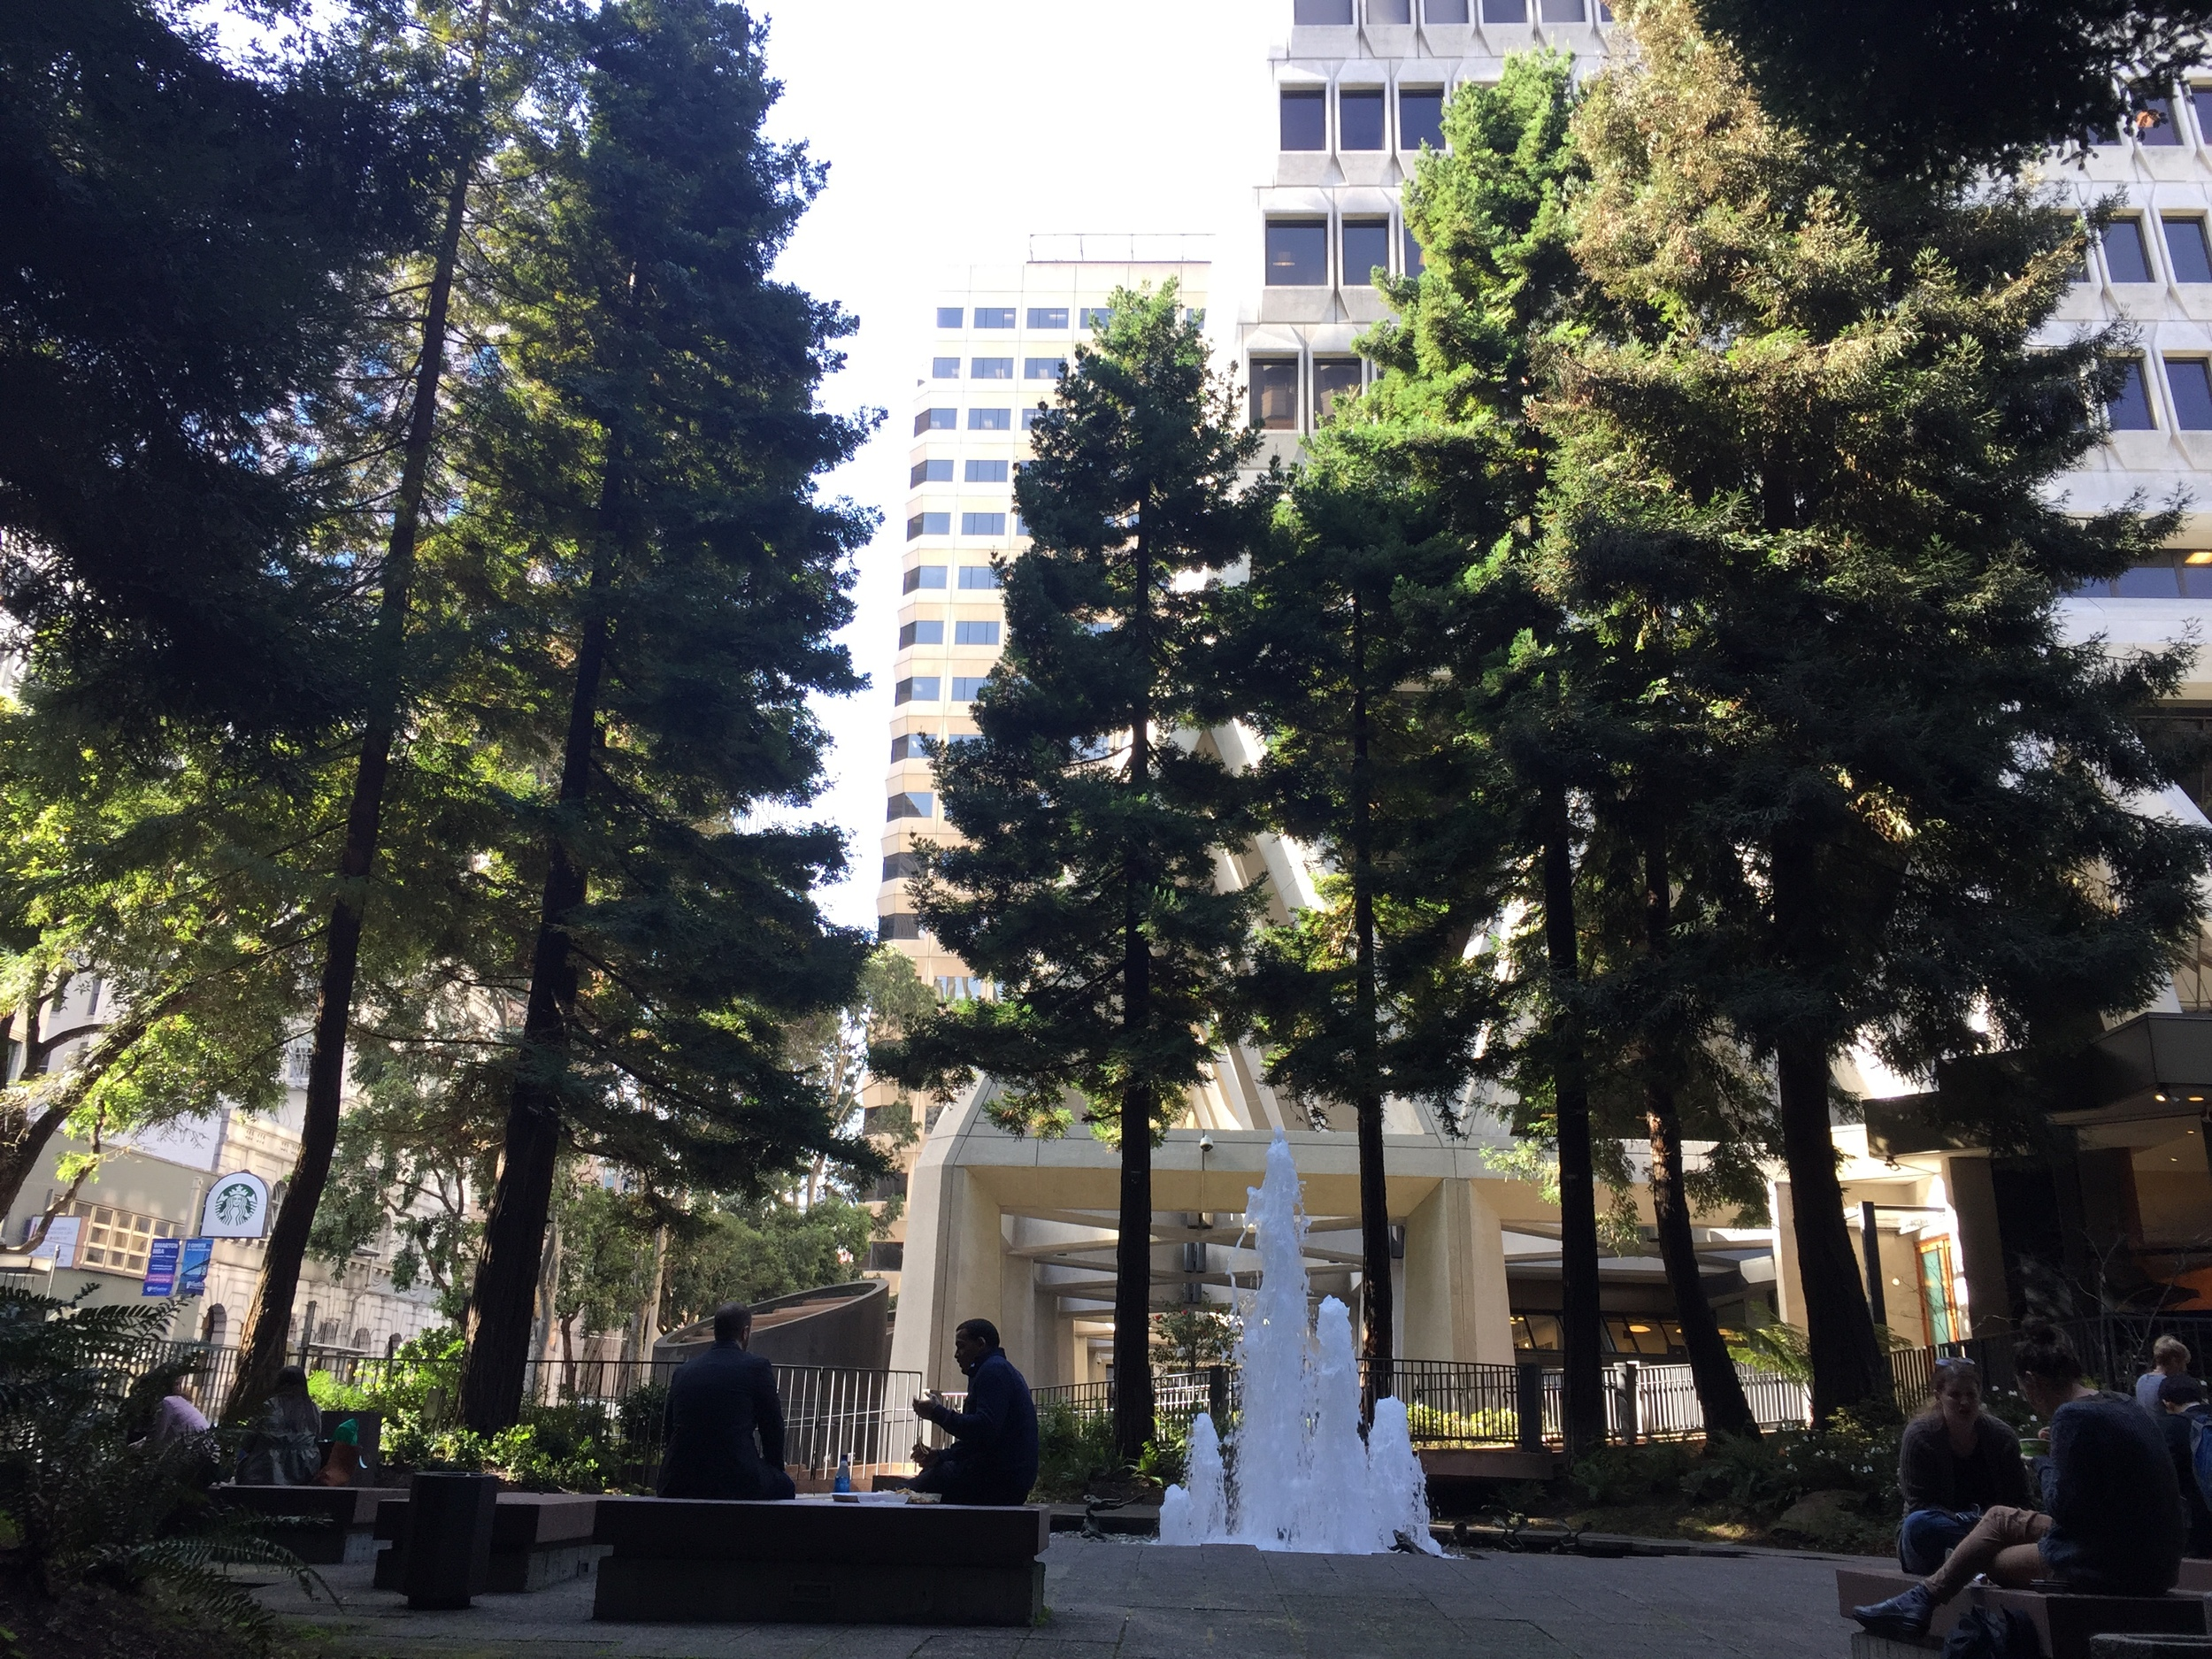 Transamerica Redwood Park is a serene public space dotted redwood trees, benches, and a fountain honoring Mark Twain.